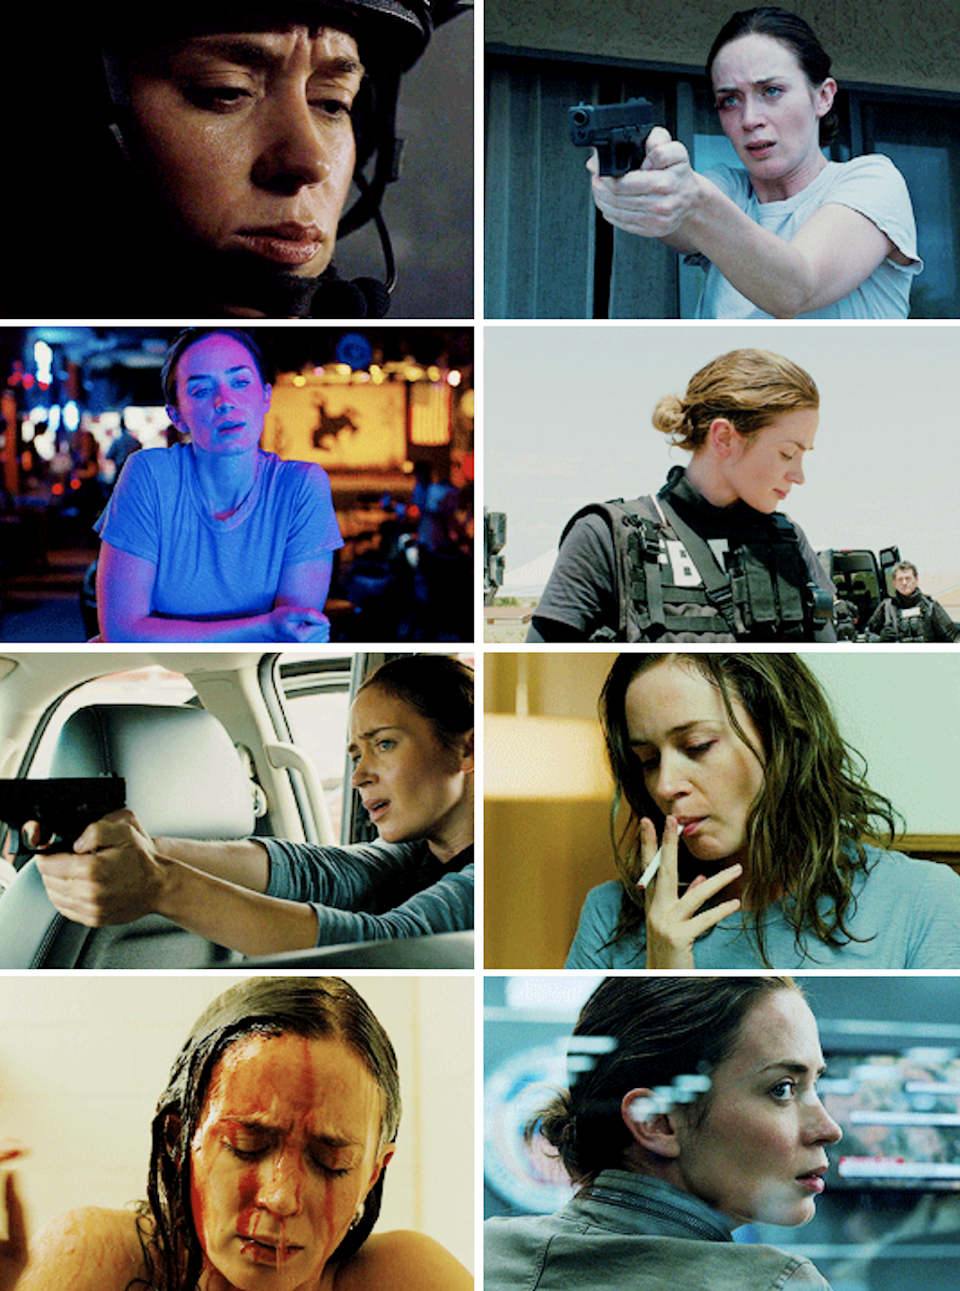 """Blunt as KAte Macer in """"Sicario"""" shooting a gun, smoking, and taking a shower to wash blood off of herself"""